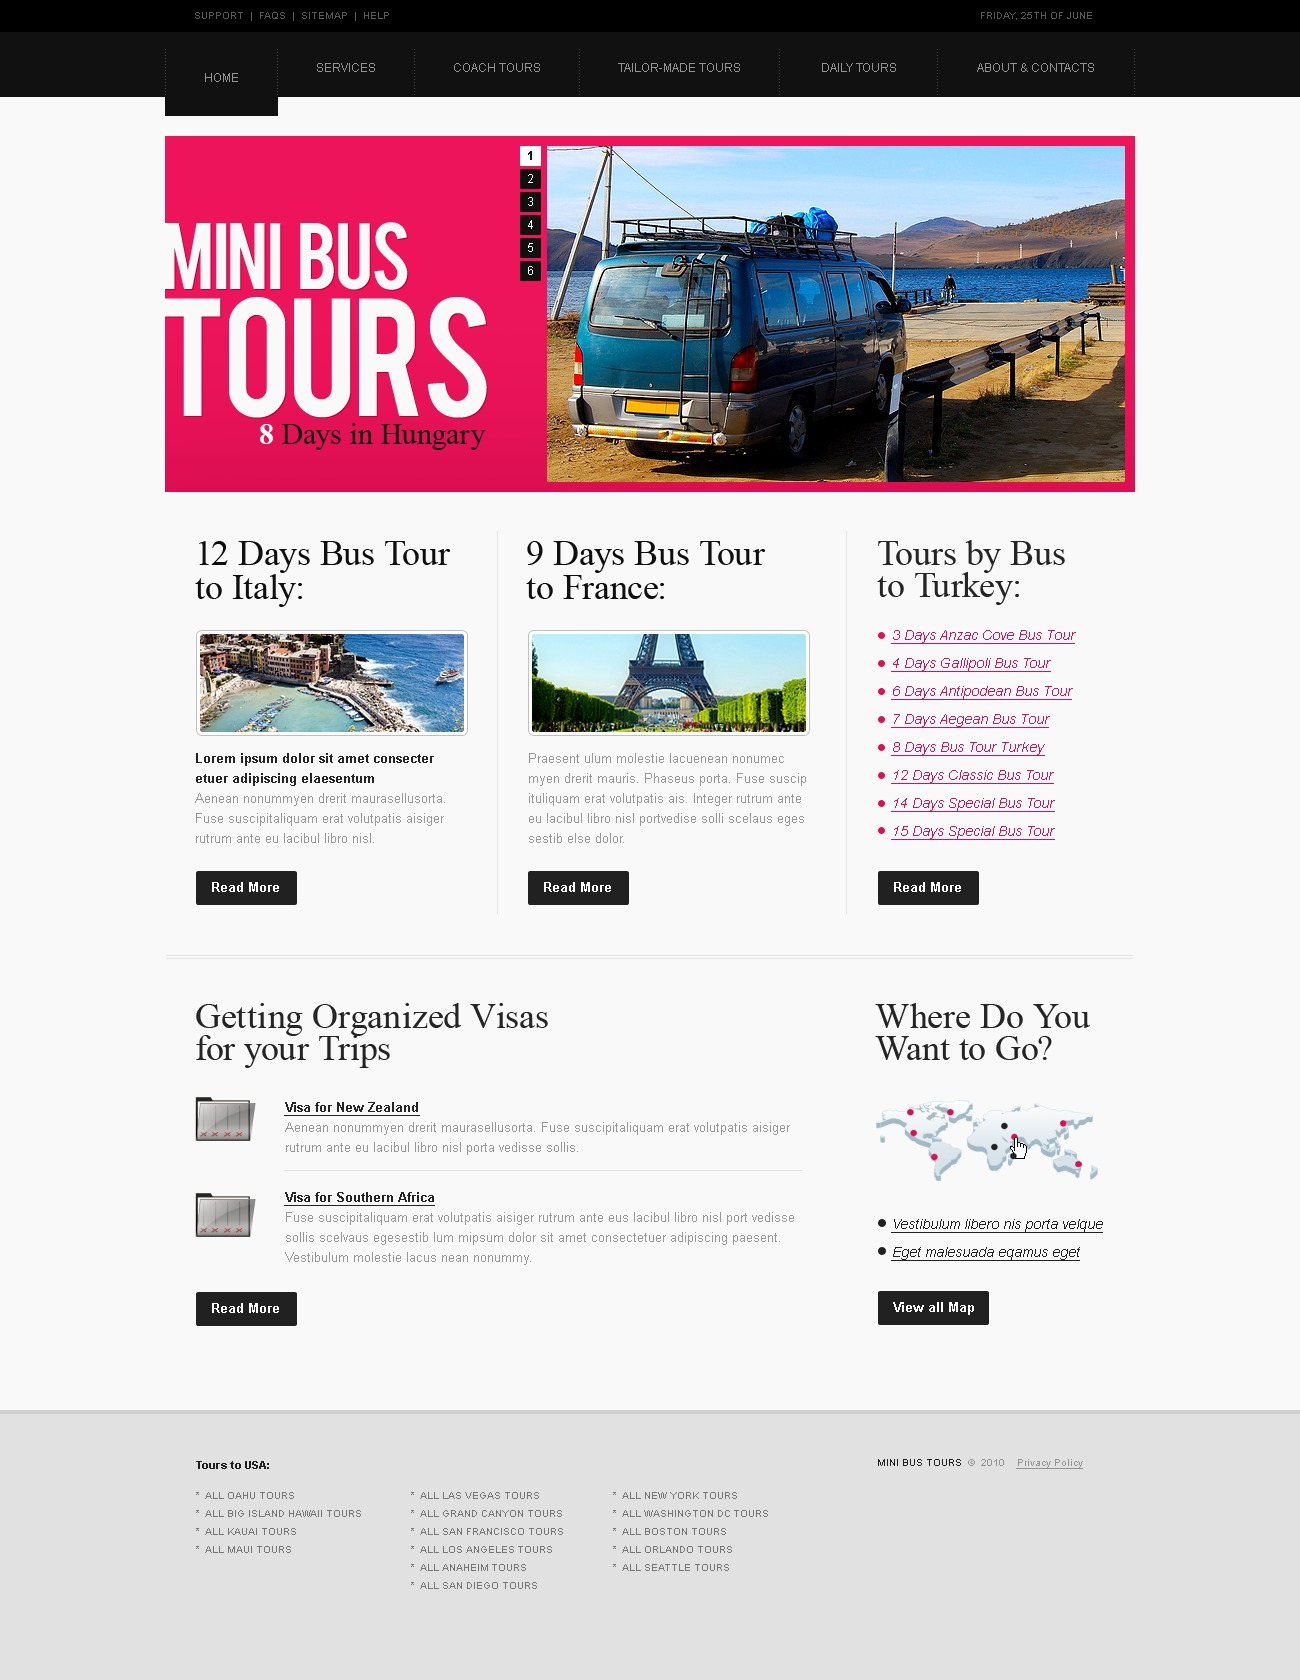 The Mini Bus PSD Design 54429, one of the best PSD templates of its kind (travel, flash 8, wide), also known as mini bus PSD template, tours PSD template, travel PSD template, compass PSD template, tour road PSD template, country PSD template, resort PSD template, spa PSD template, flight hotel PSD template, car PSD template, rental PSD template, cruise PSD template, sights PSD template, reservation PSD template, location PSD template, authorization PSD template, ticket PSD template, guide PSD template, beach PSD template, sea PSD template, relaxation PSD template, recreation PSD template, impression PSD template, air PSD template, liner PSD template, traveling PSD template, apartment PSD template, vacation PSD template, rest PSD template, comfort PSD template, destination PSD template, exp and related with mini bus, tours, travel, compass, tour road, country, resort, spa, flight hotel, car, rental, cruise, sights, reservation, location, authorization, ticket, guide, beach, sea, relaxation, recreation, impression, air, liner, traveling, apartment, vacation, rest, comfort, destination, exp, etc.